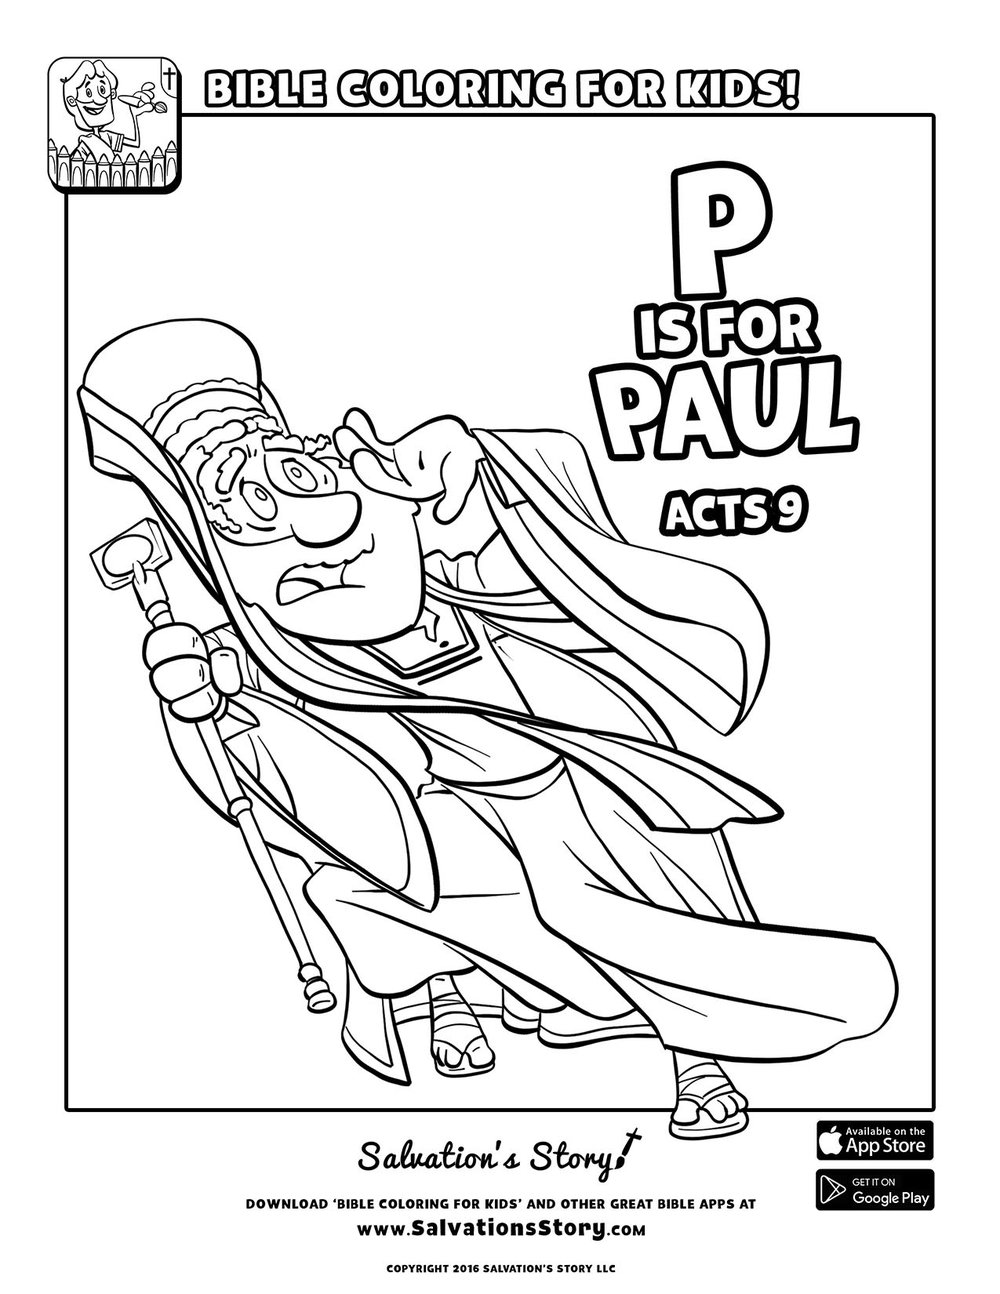 P is for Paul.jpg